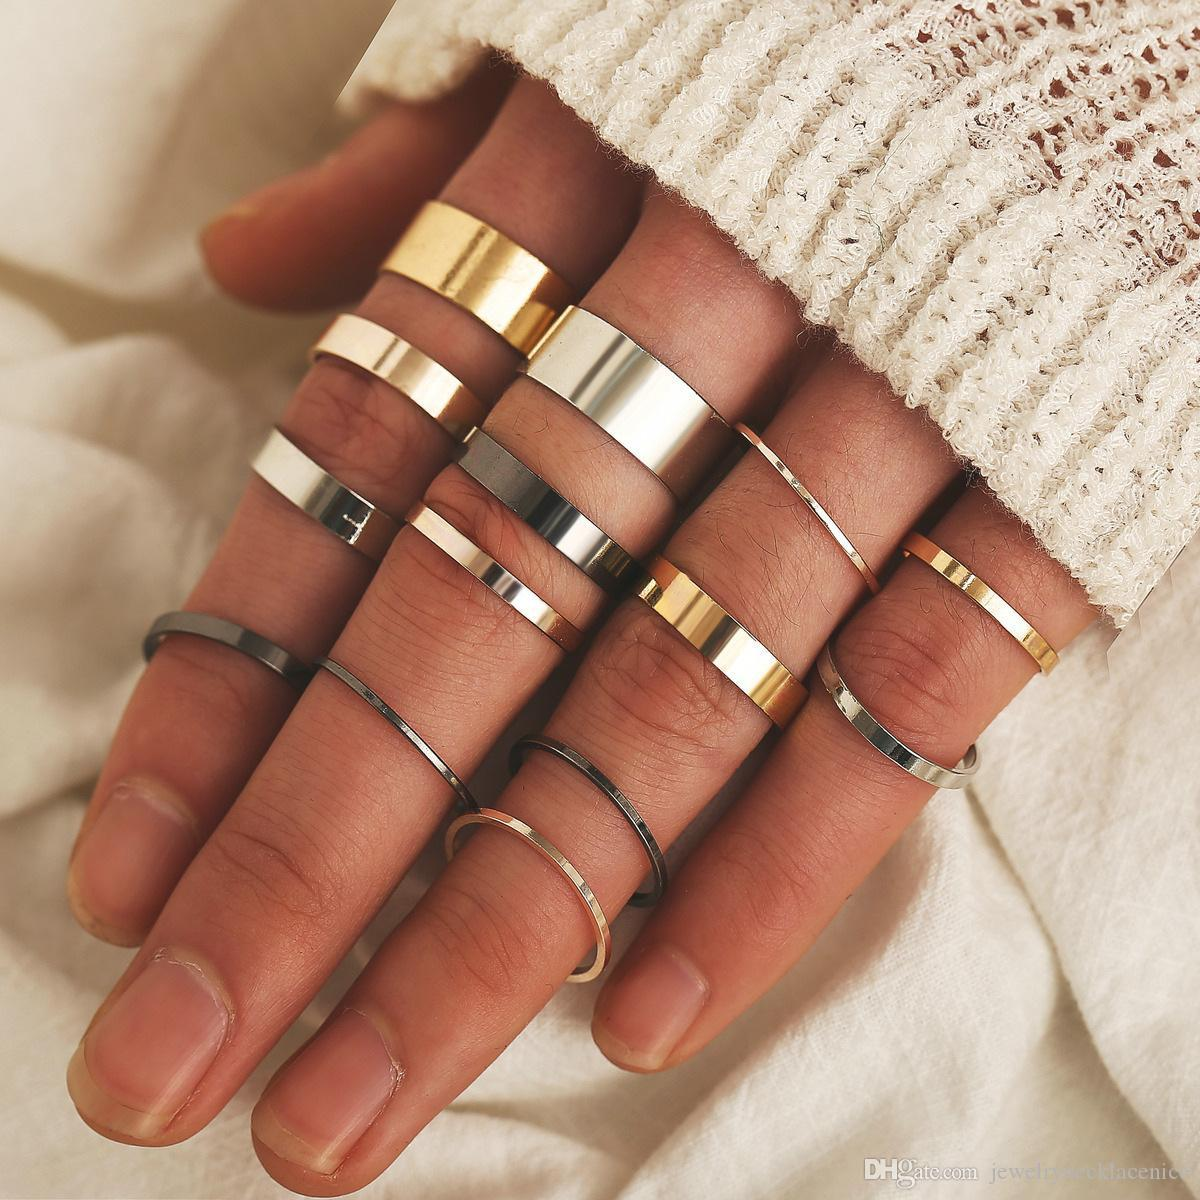 14 Pcs/Set Women Fashion Gold Silver Black Rings Set 2020 Mix Finger Joint Ring Boho Vintage Round Knuckle Ring Jewelry Gifts Wholesale